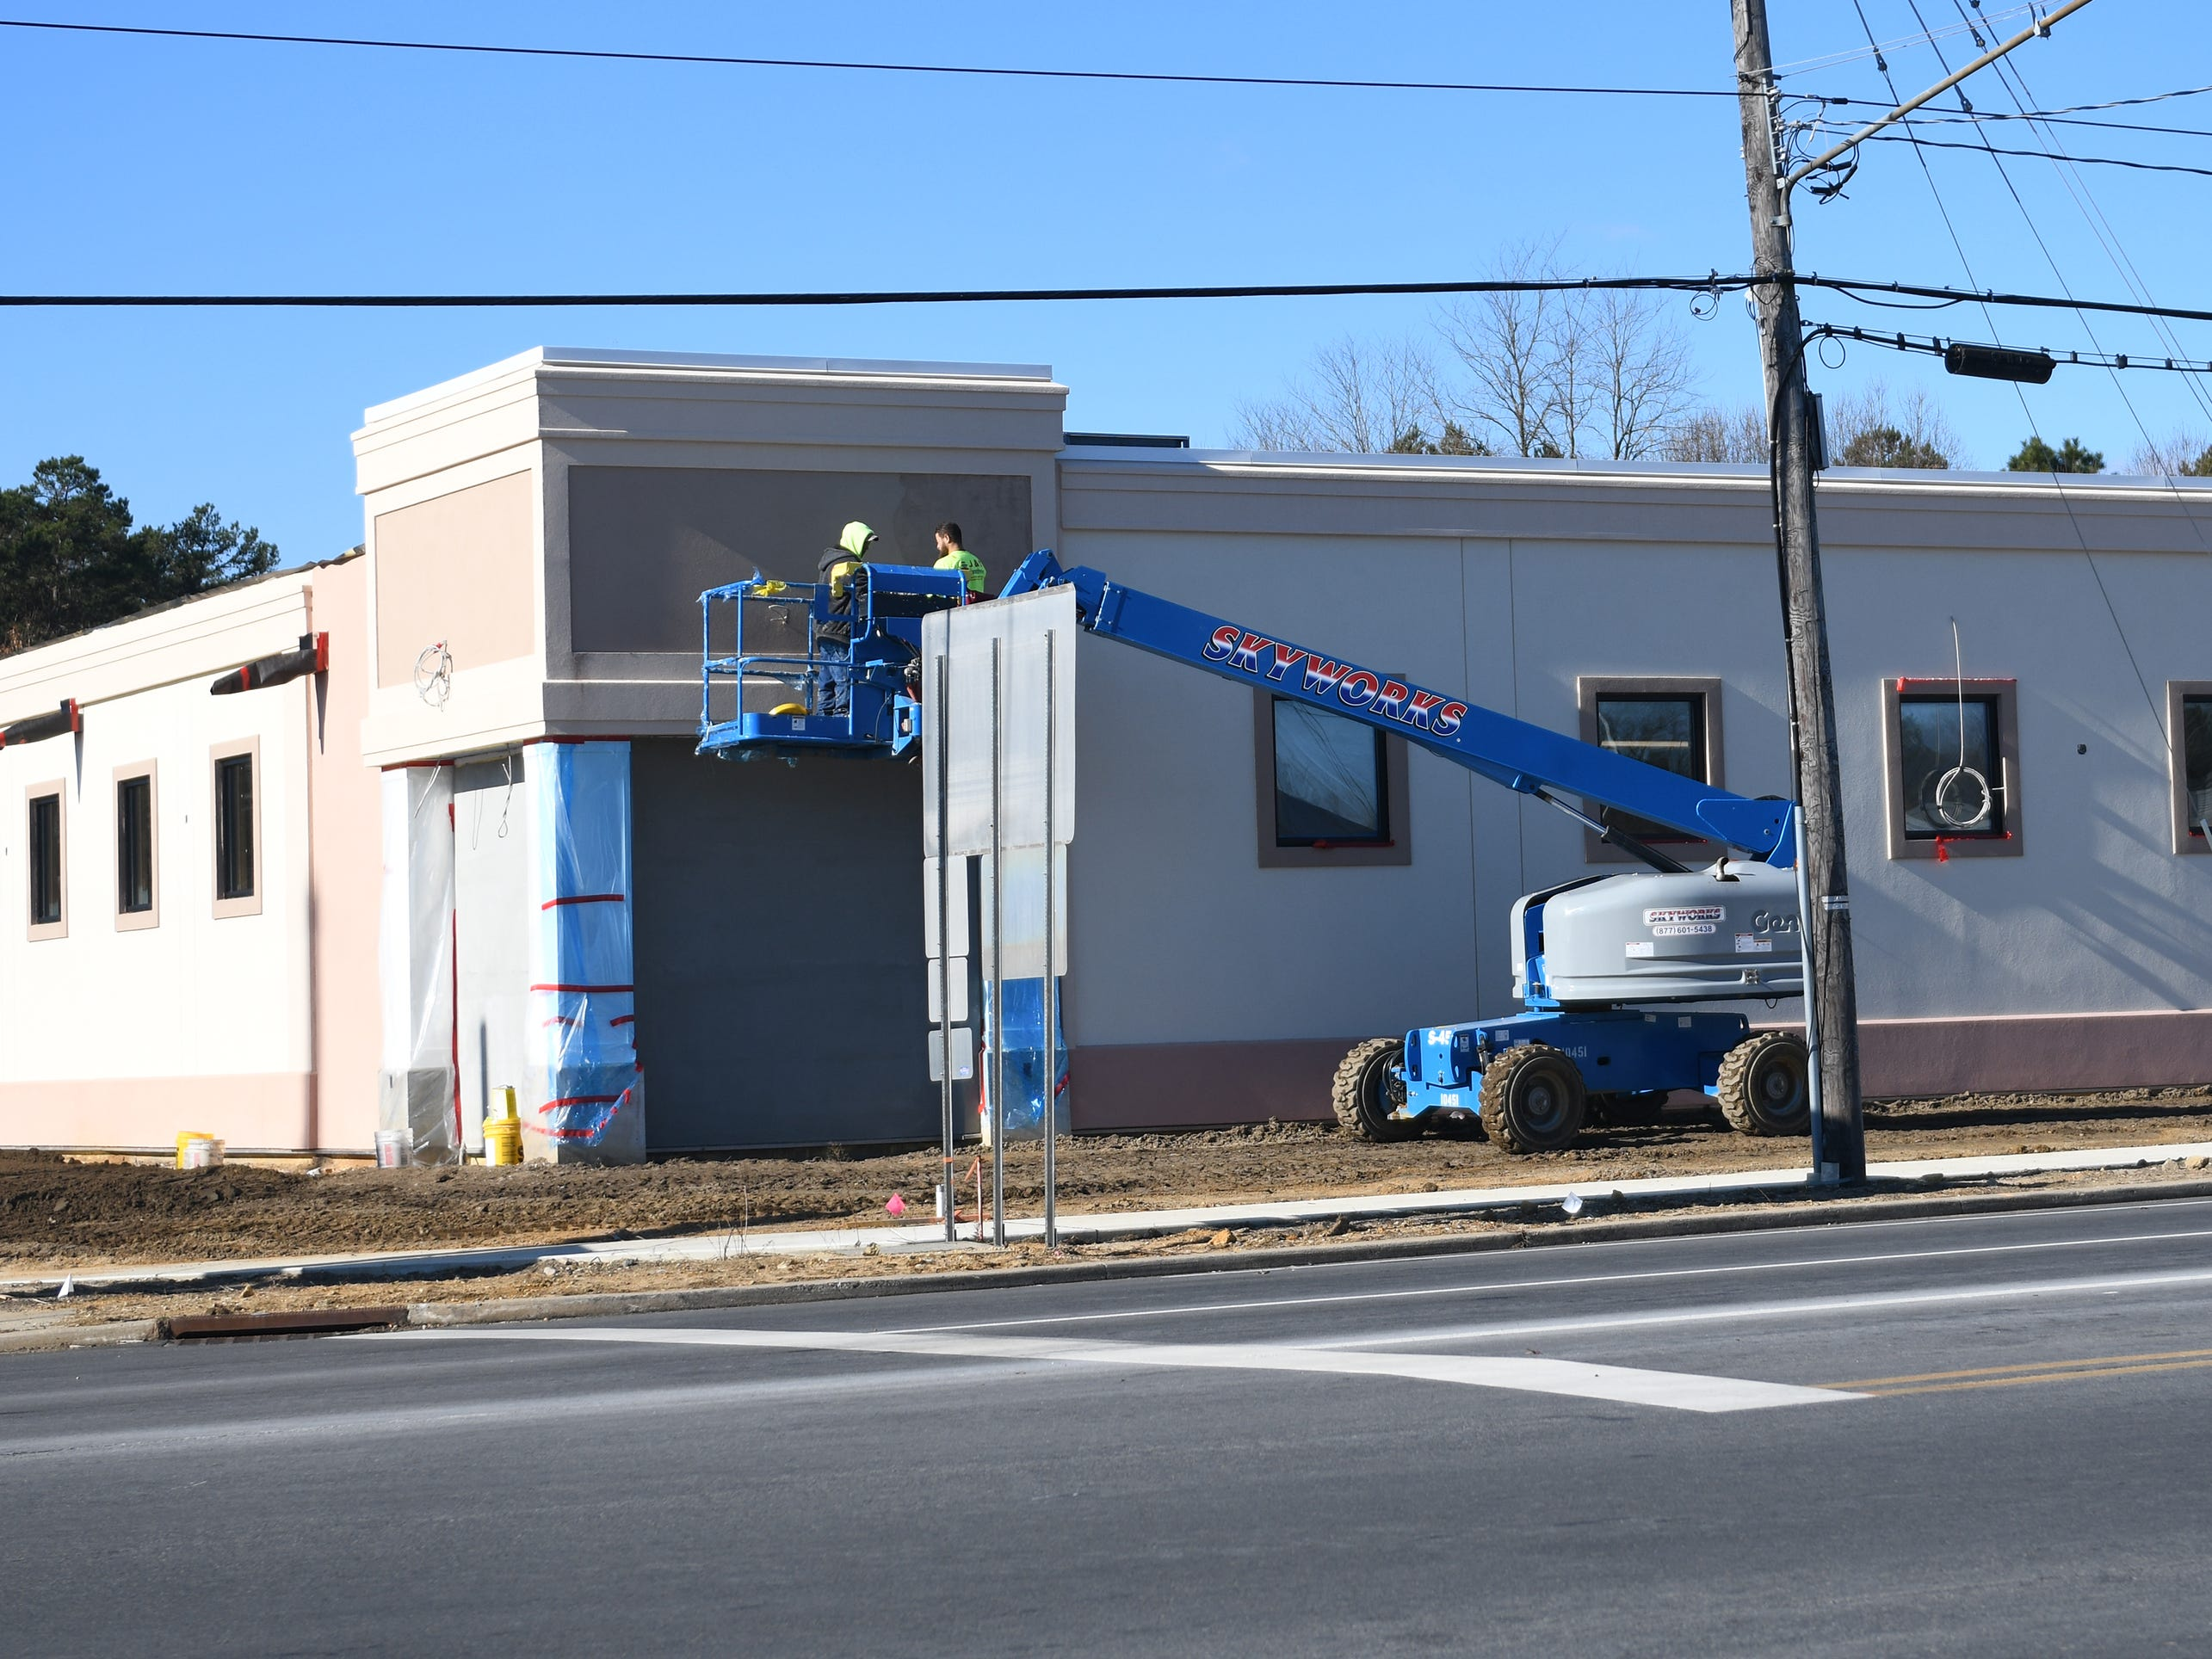 The Brass Tap Craft Beer Bar will open soon at 2738 S. Delsea Drive in Vineland. Construction at the site continues on Friday, December 7, 2018.